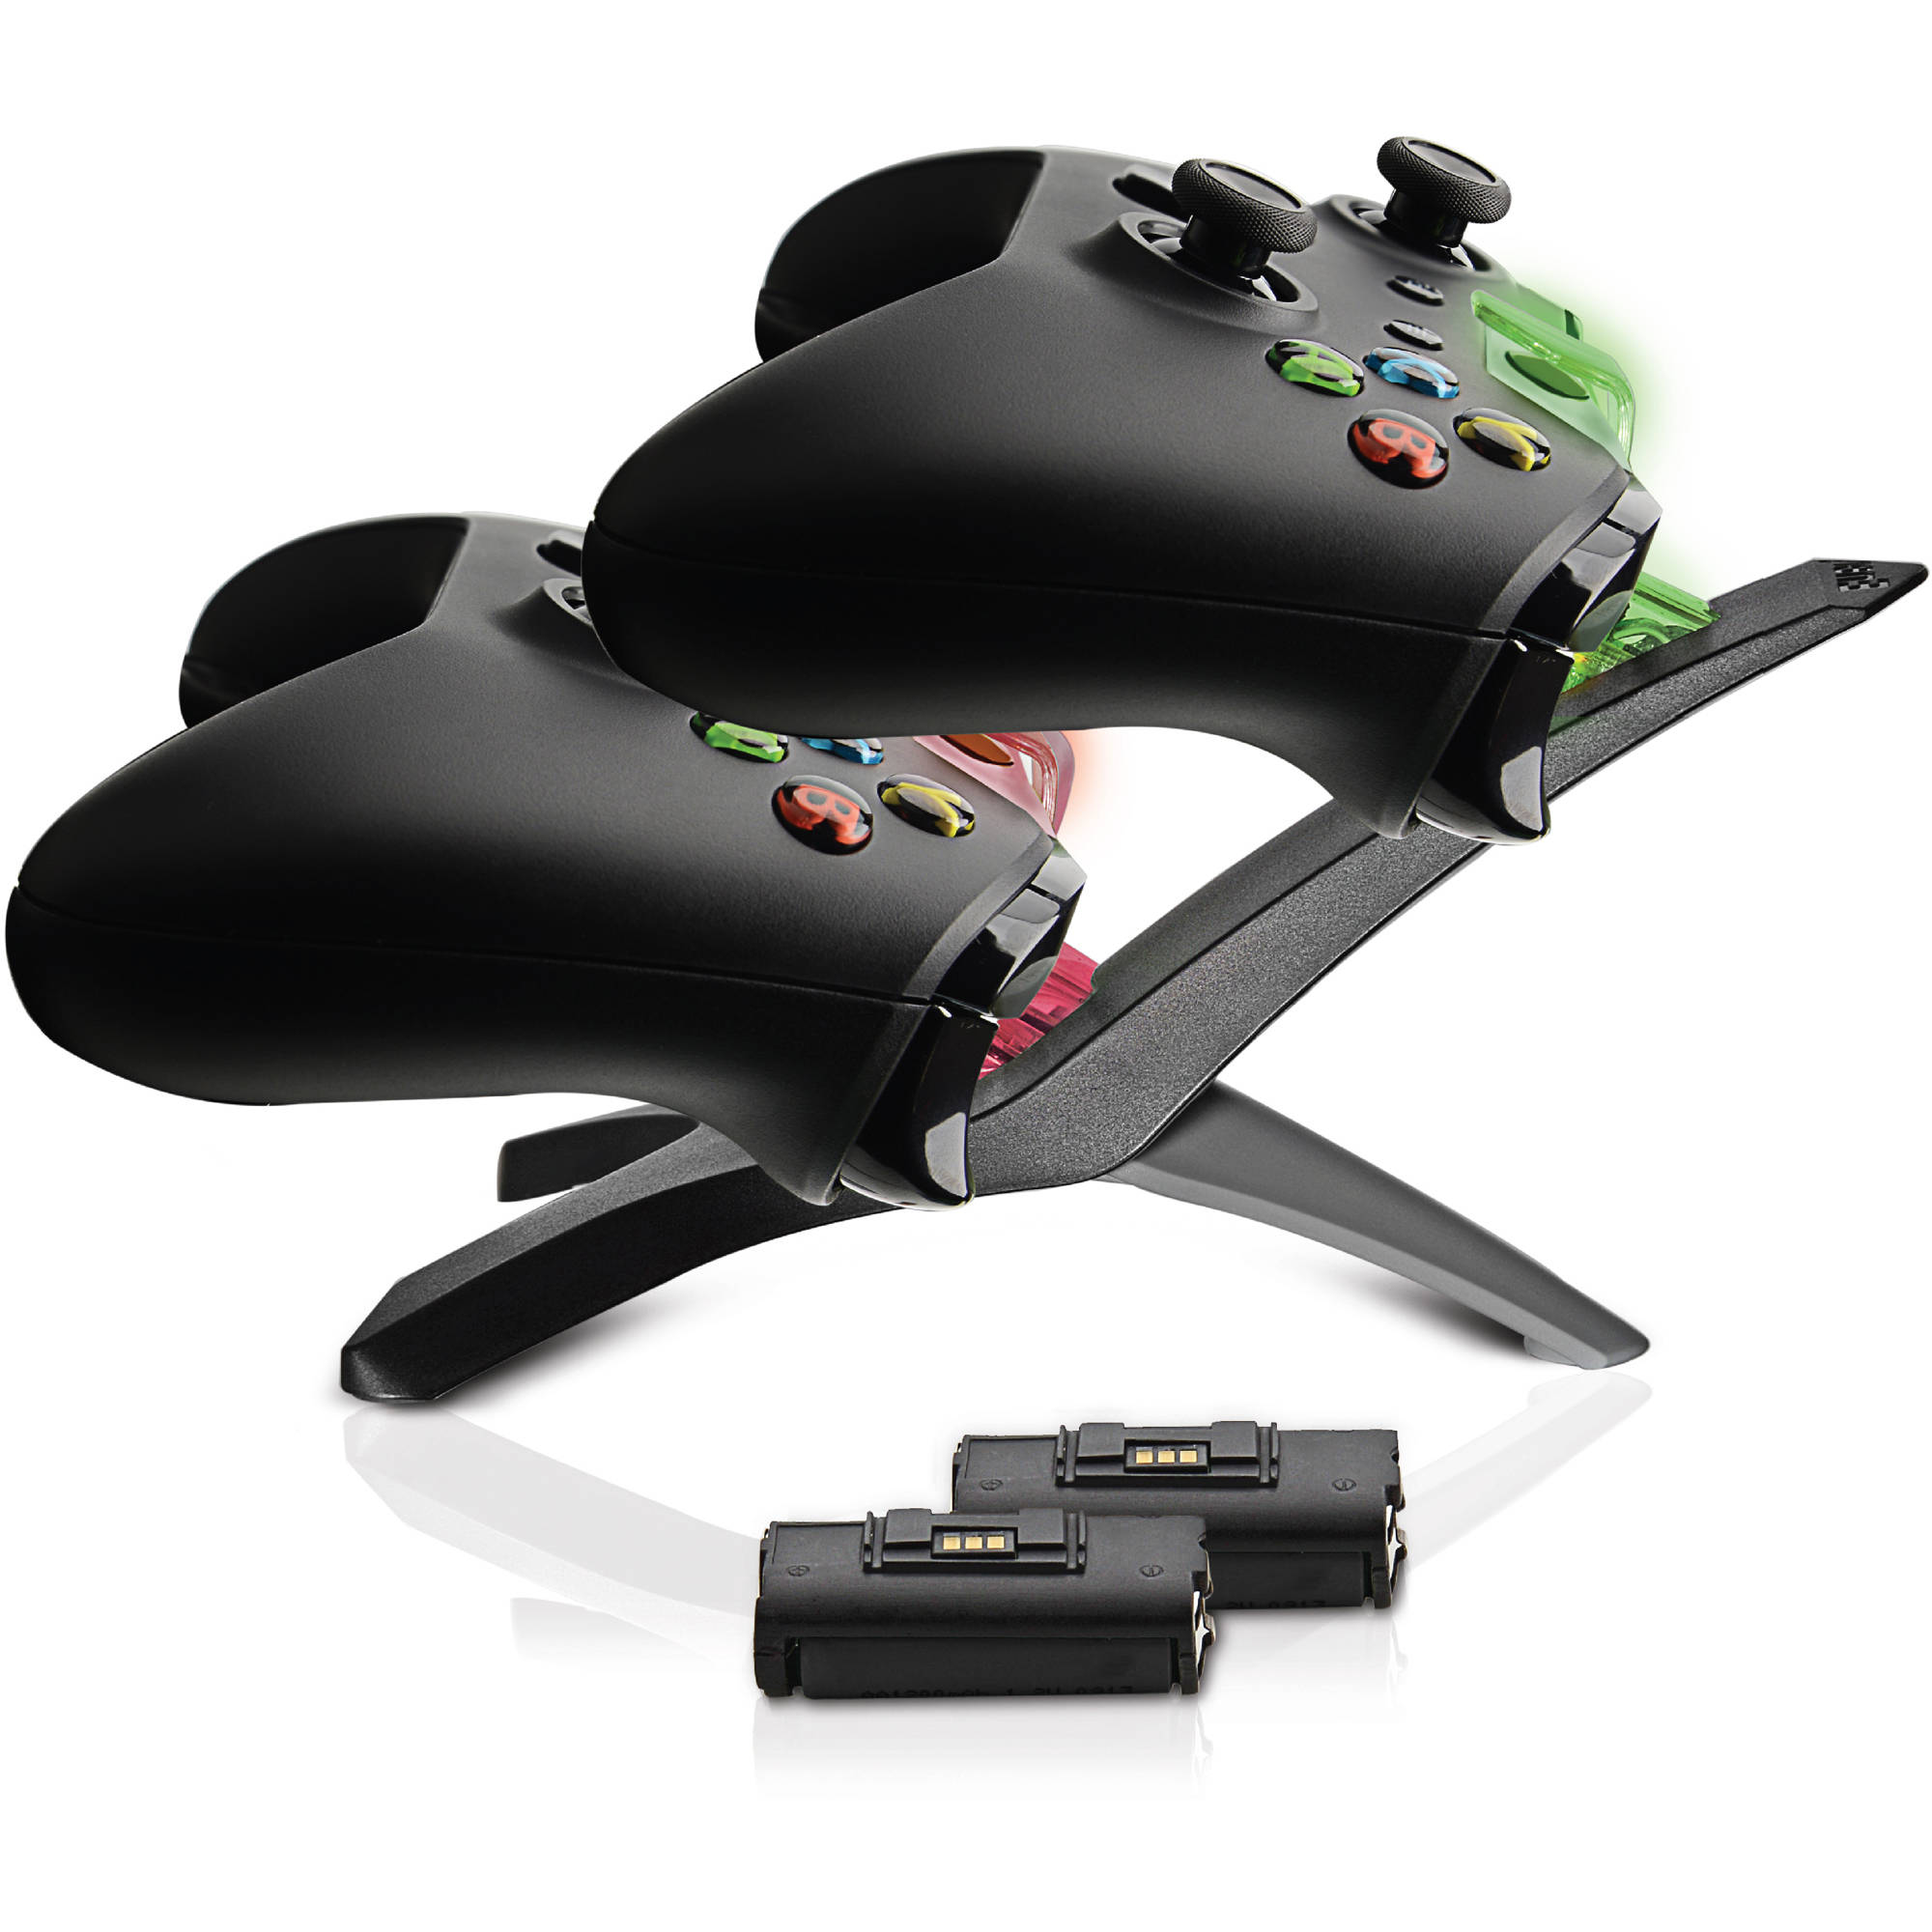 Energizer 0018 2X Charging System (Xbox One) by PDP